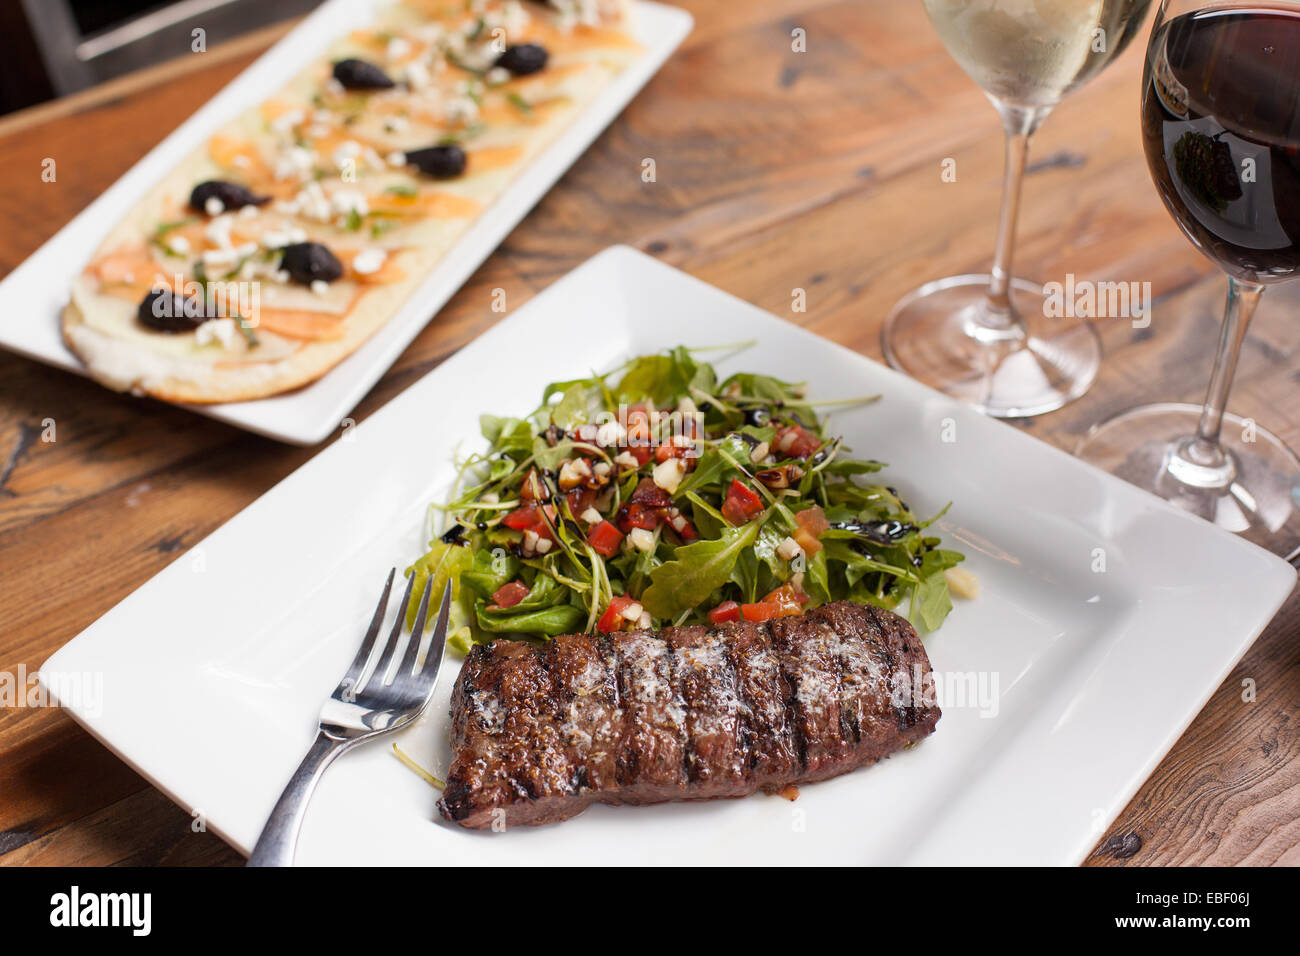 Grilled steak with arugula salad and rustic flatbread with wine - Stock Image